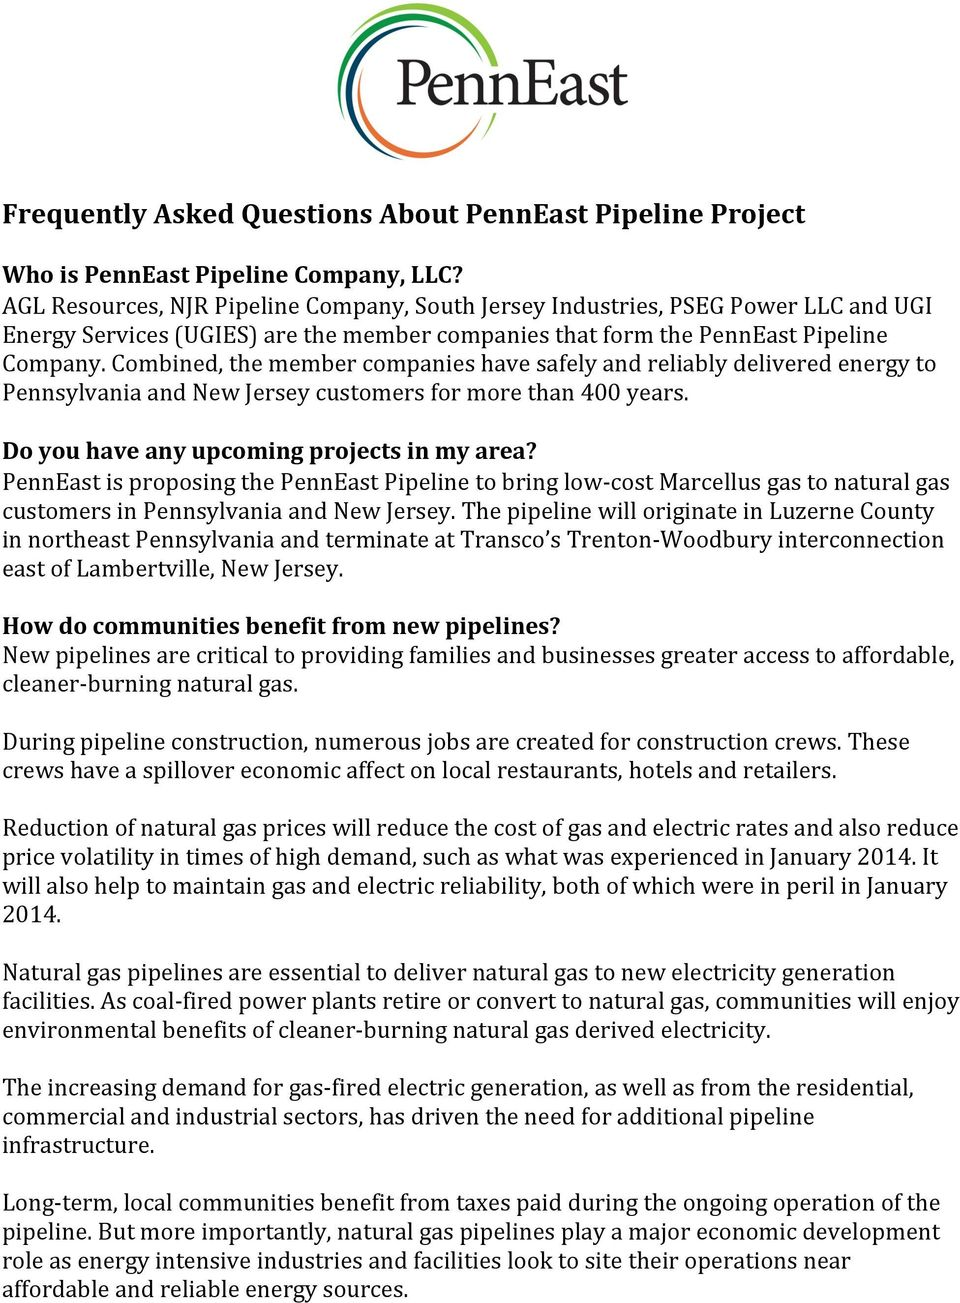 Frequently Asked Questions About PennEast Pipeline Project - PDF